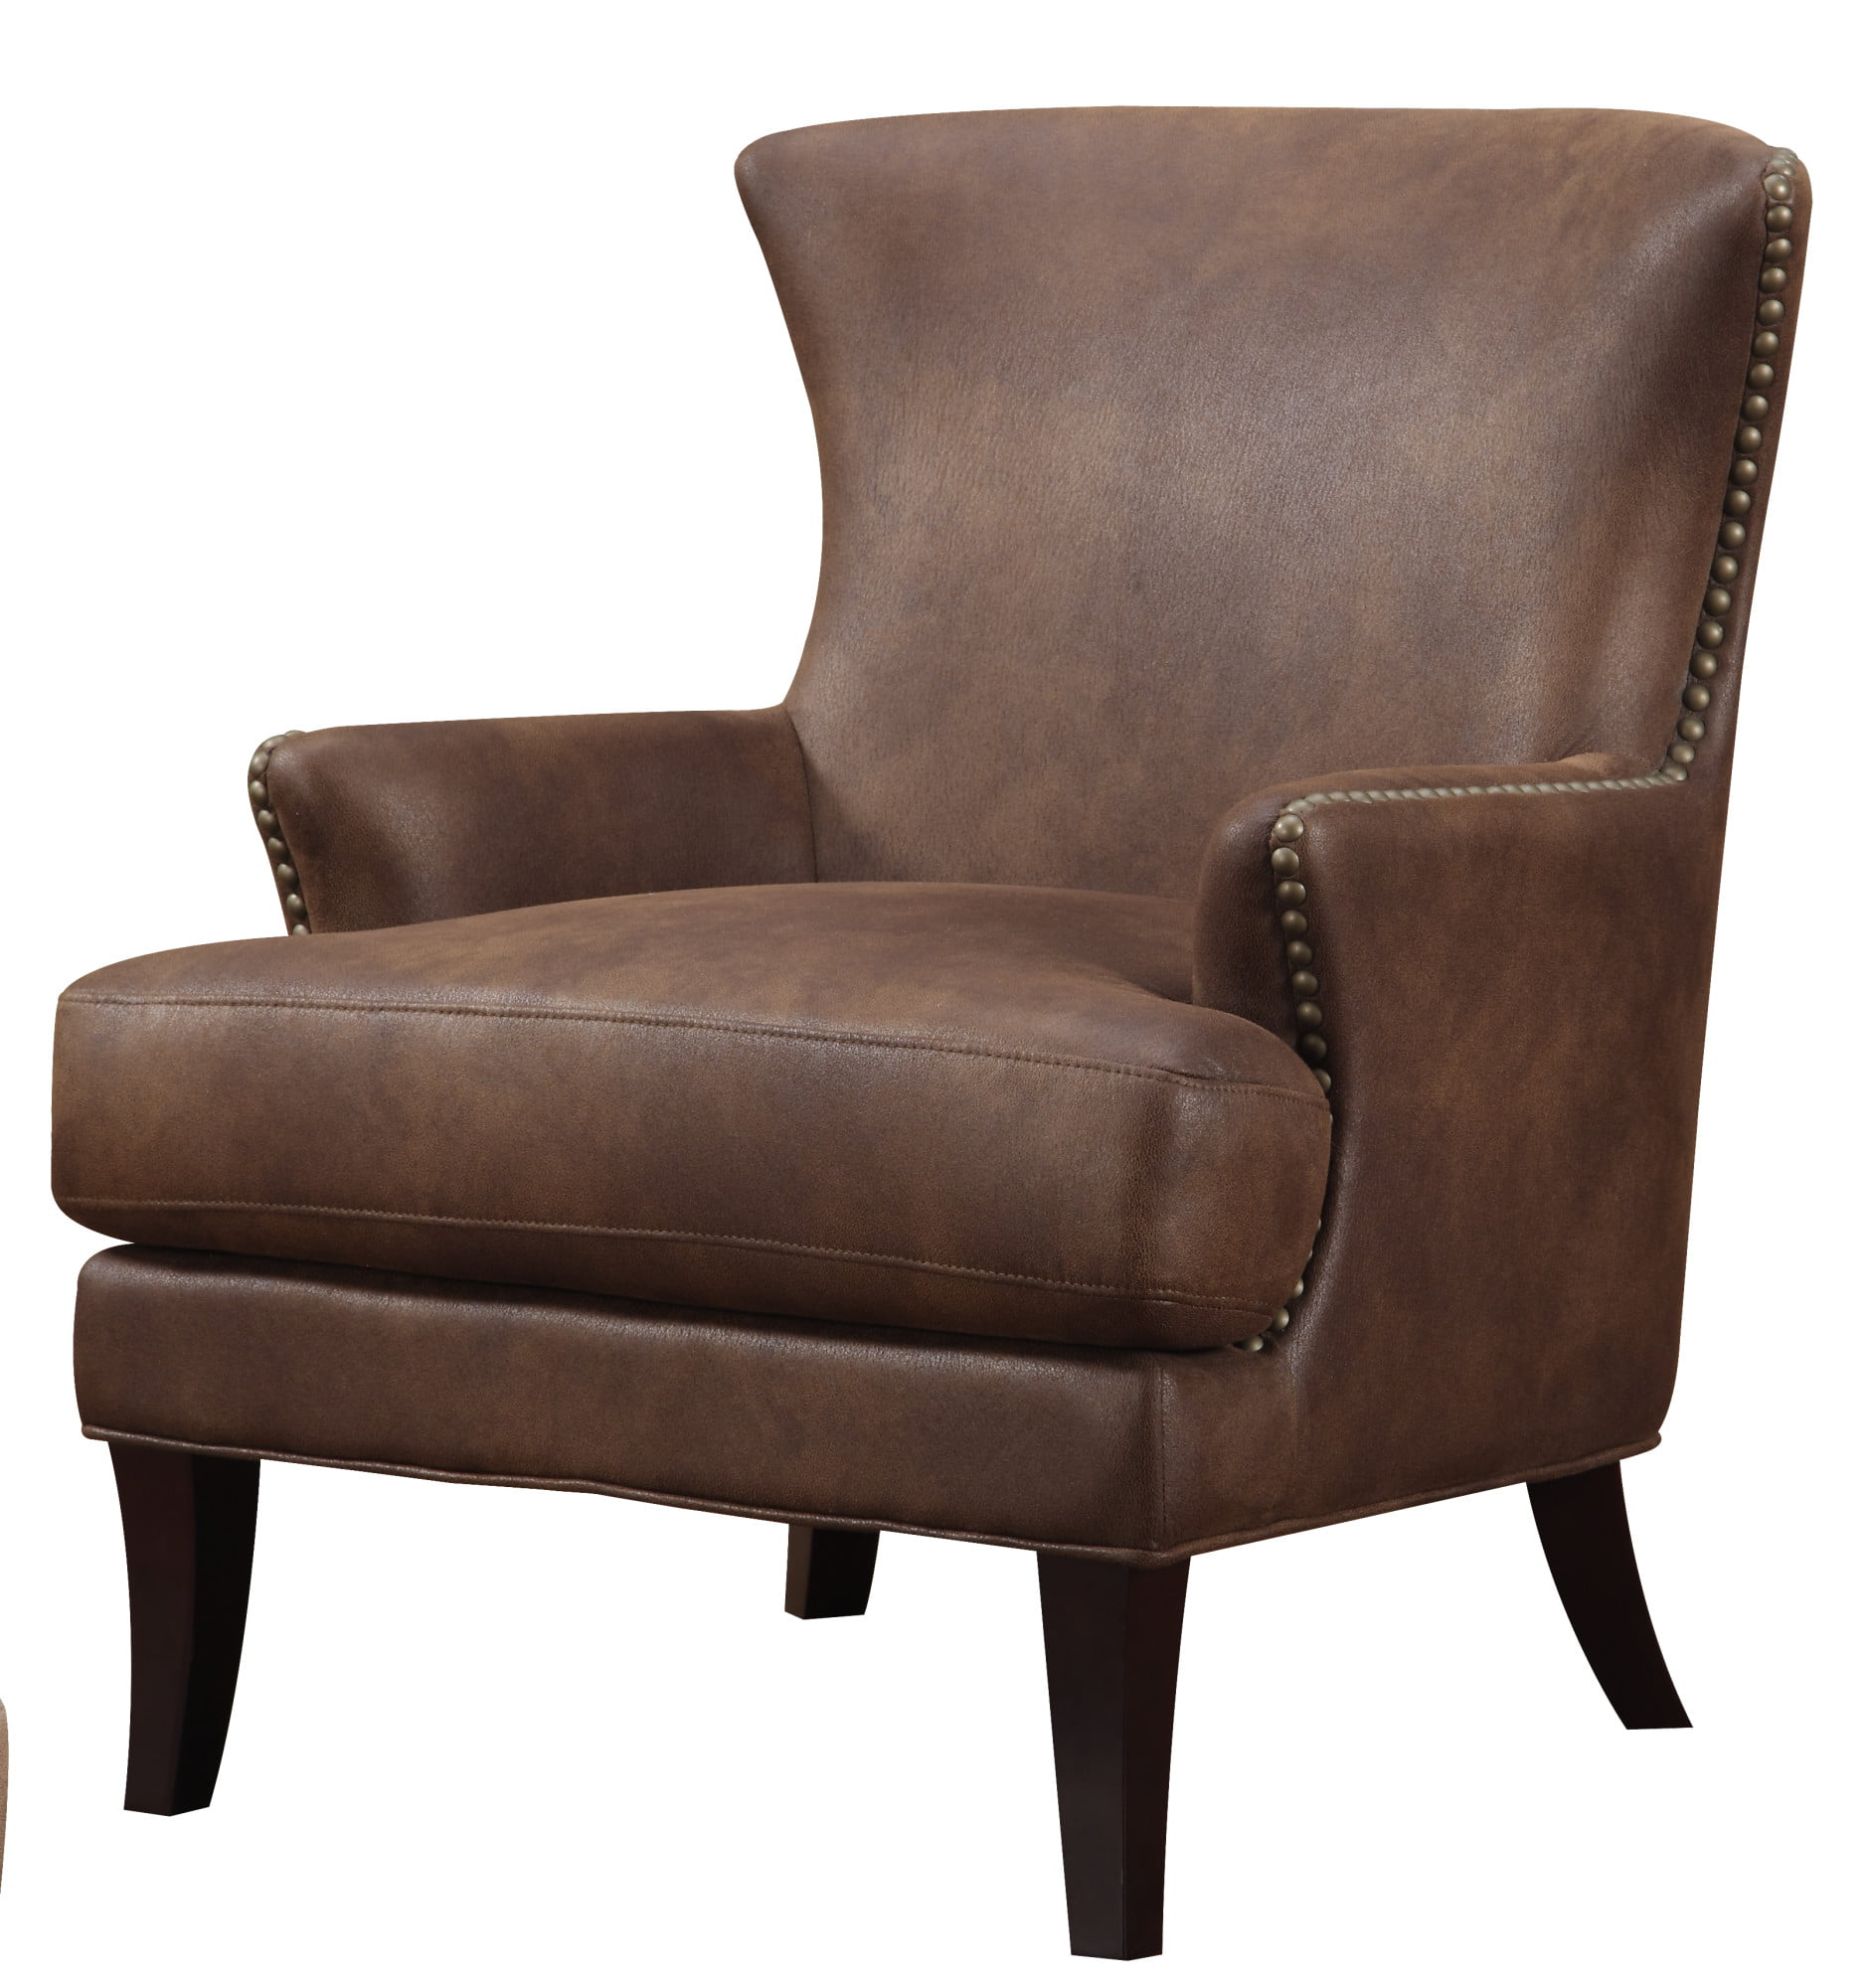 Emerald Home Nola Brown Accent Chair with Faux Suede ...